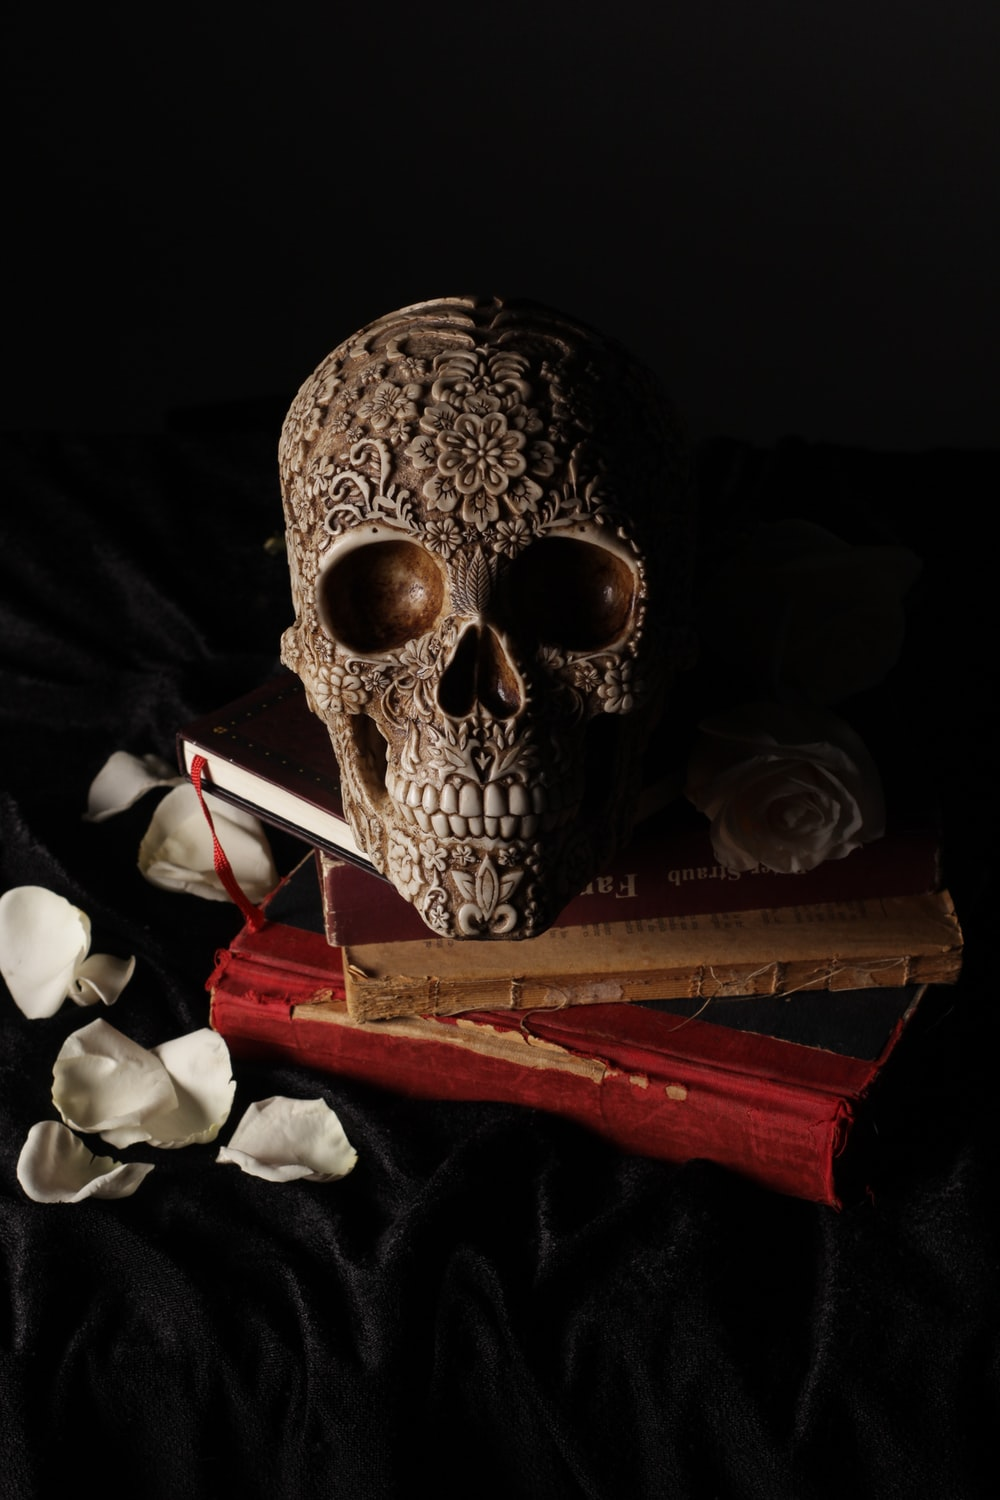 gray skull on top of brown book